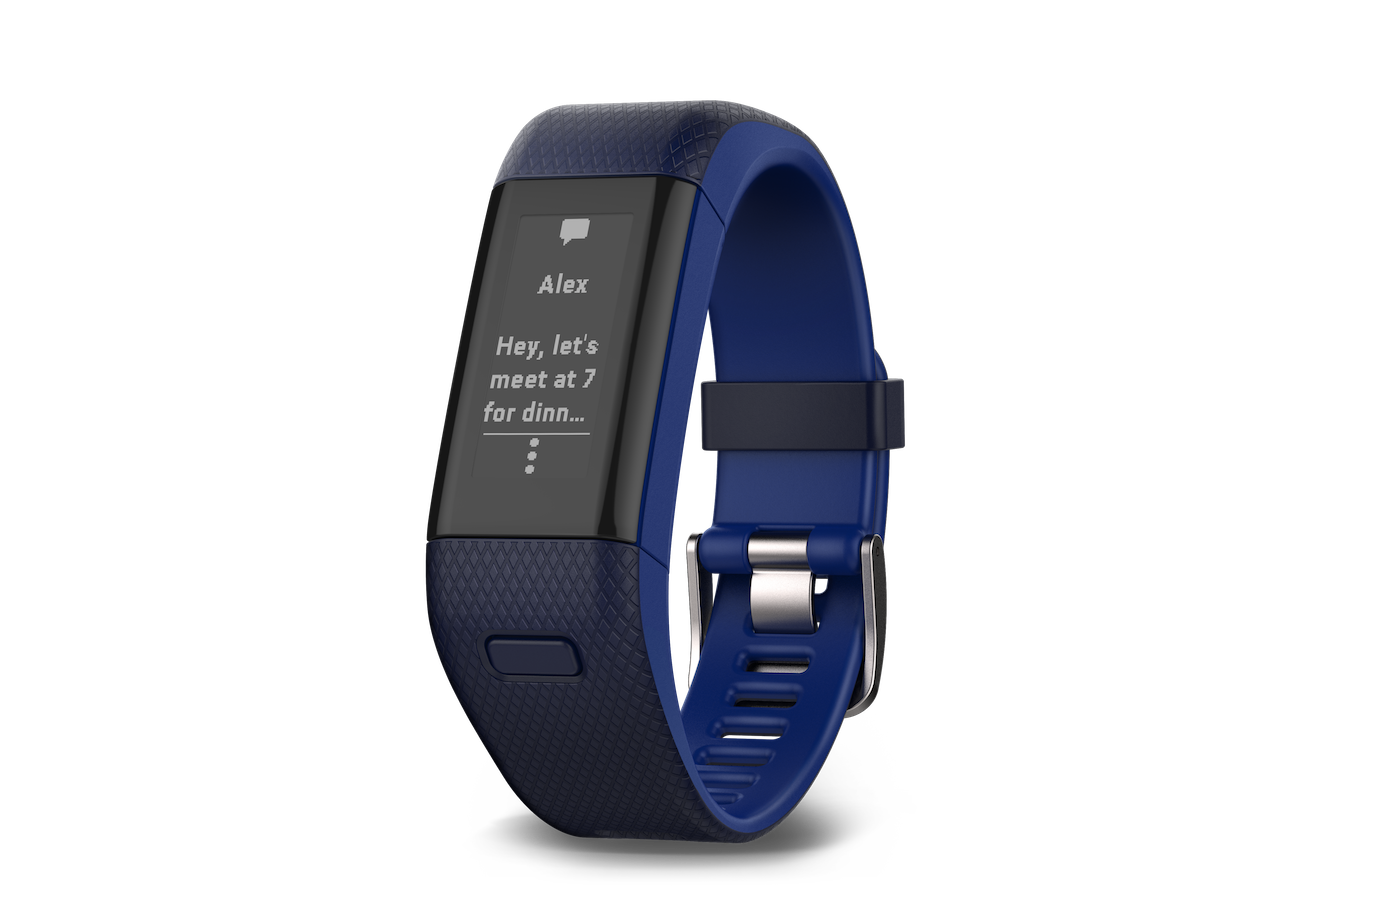 Garmin's new fitness tracker is a more accurate Vivosmart HR